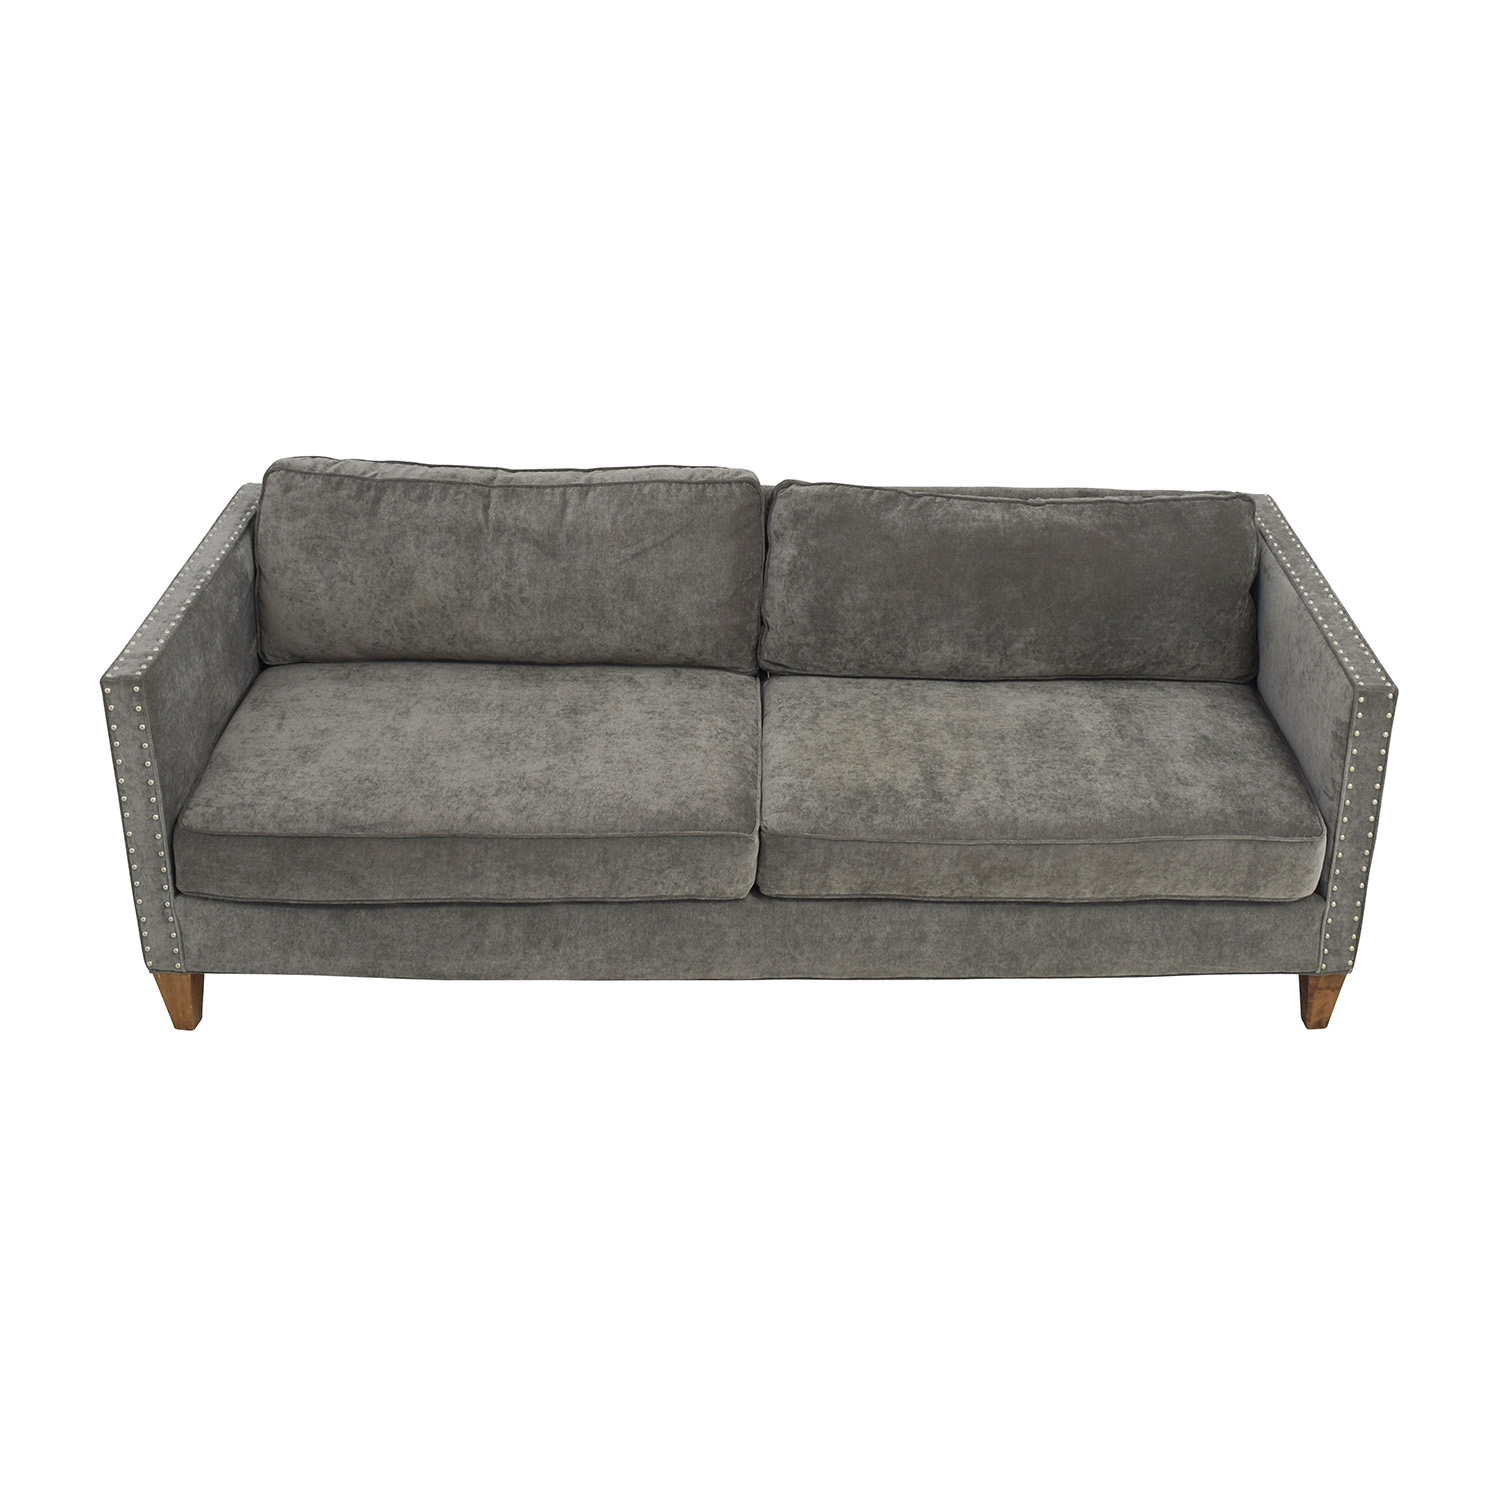 Exceptional Rowe Furniture Rowe Furniture Mitchell Grey Studded Sofa Sofas